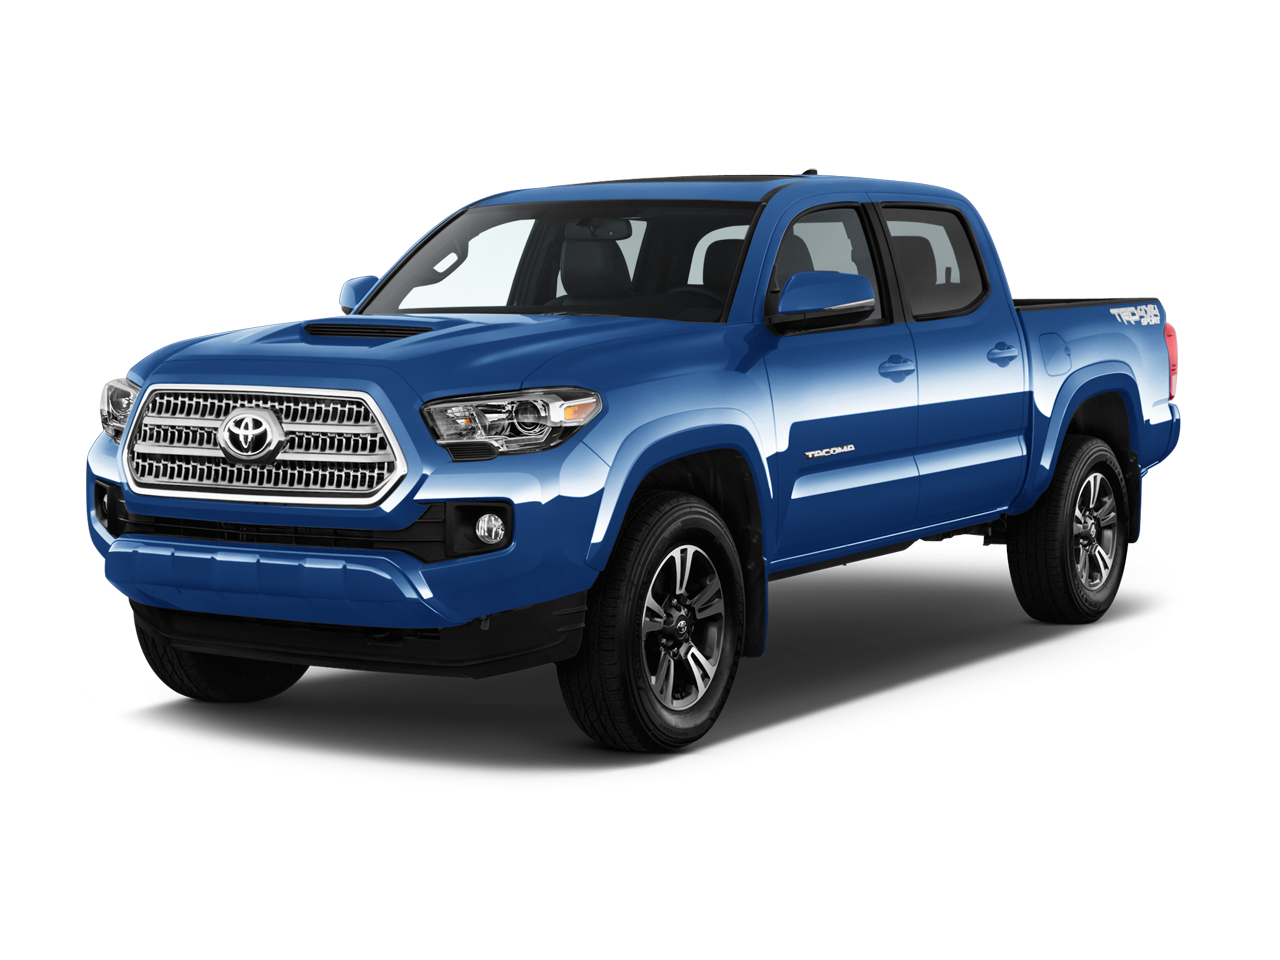 new tacoma trd sport double cab 5 39 bed v6 4x4 at for sale. Black Bedroom Furniture Sets. Home Design Ideas